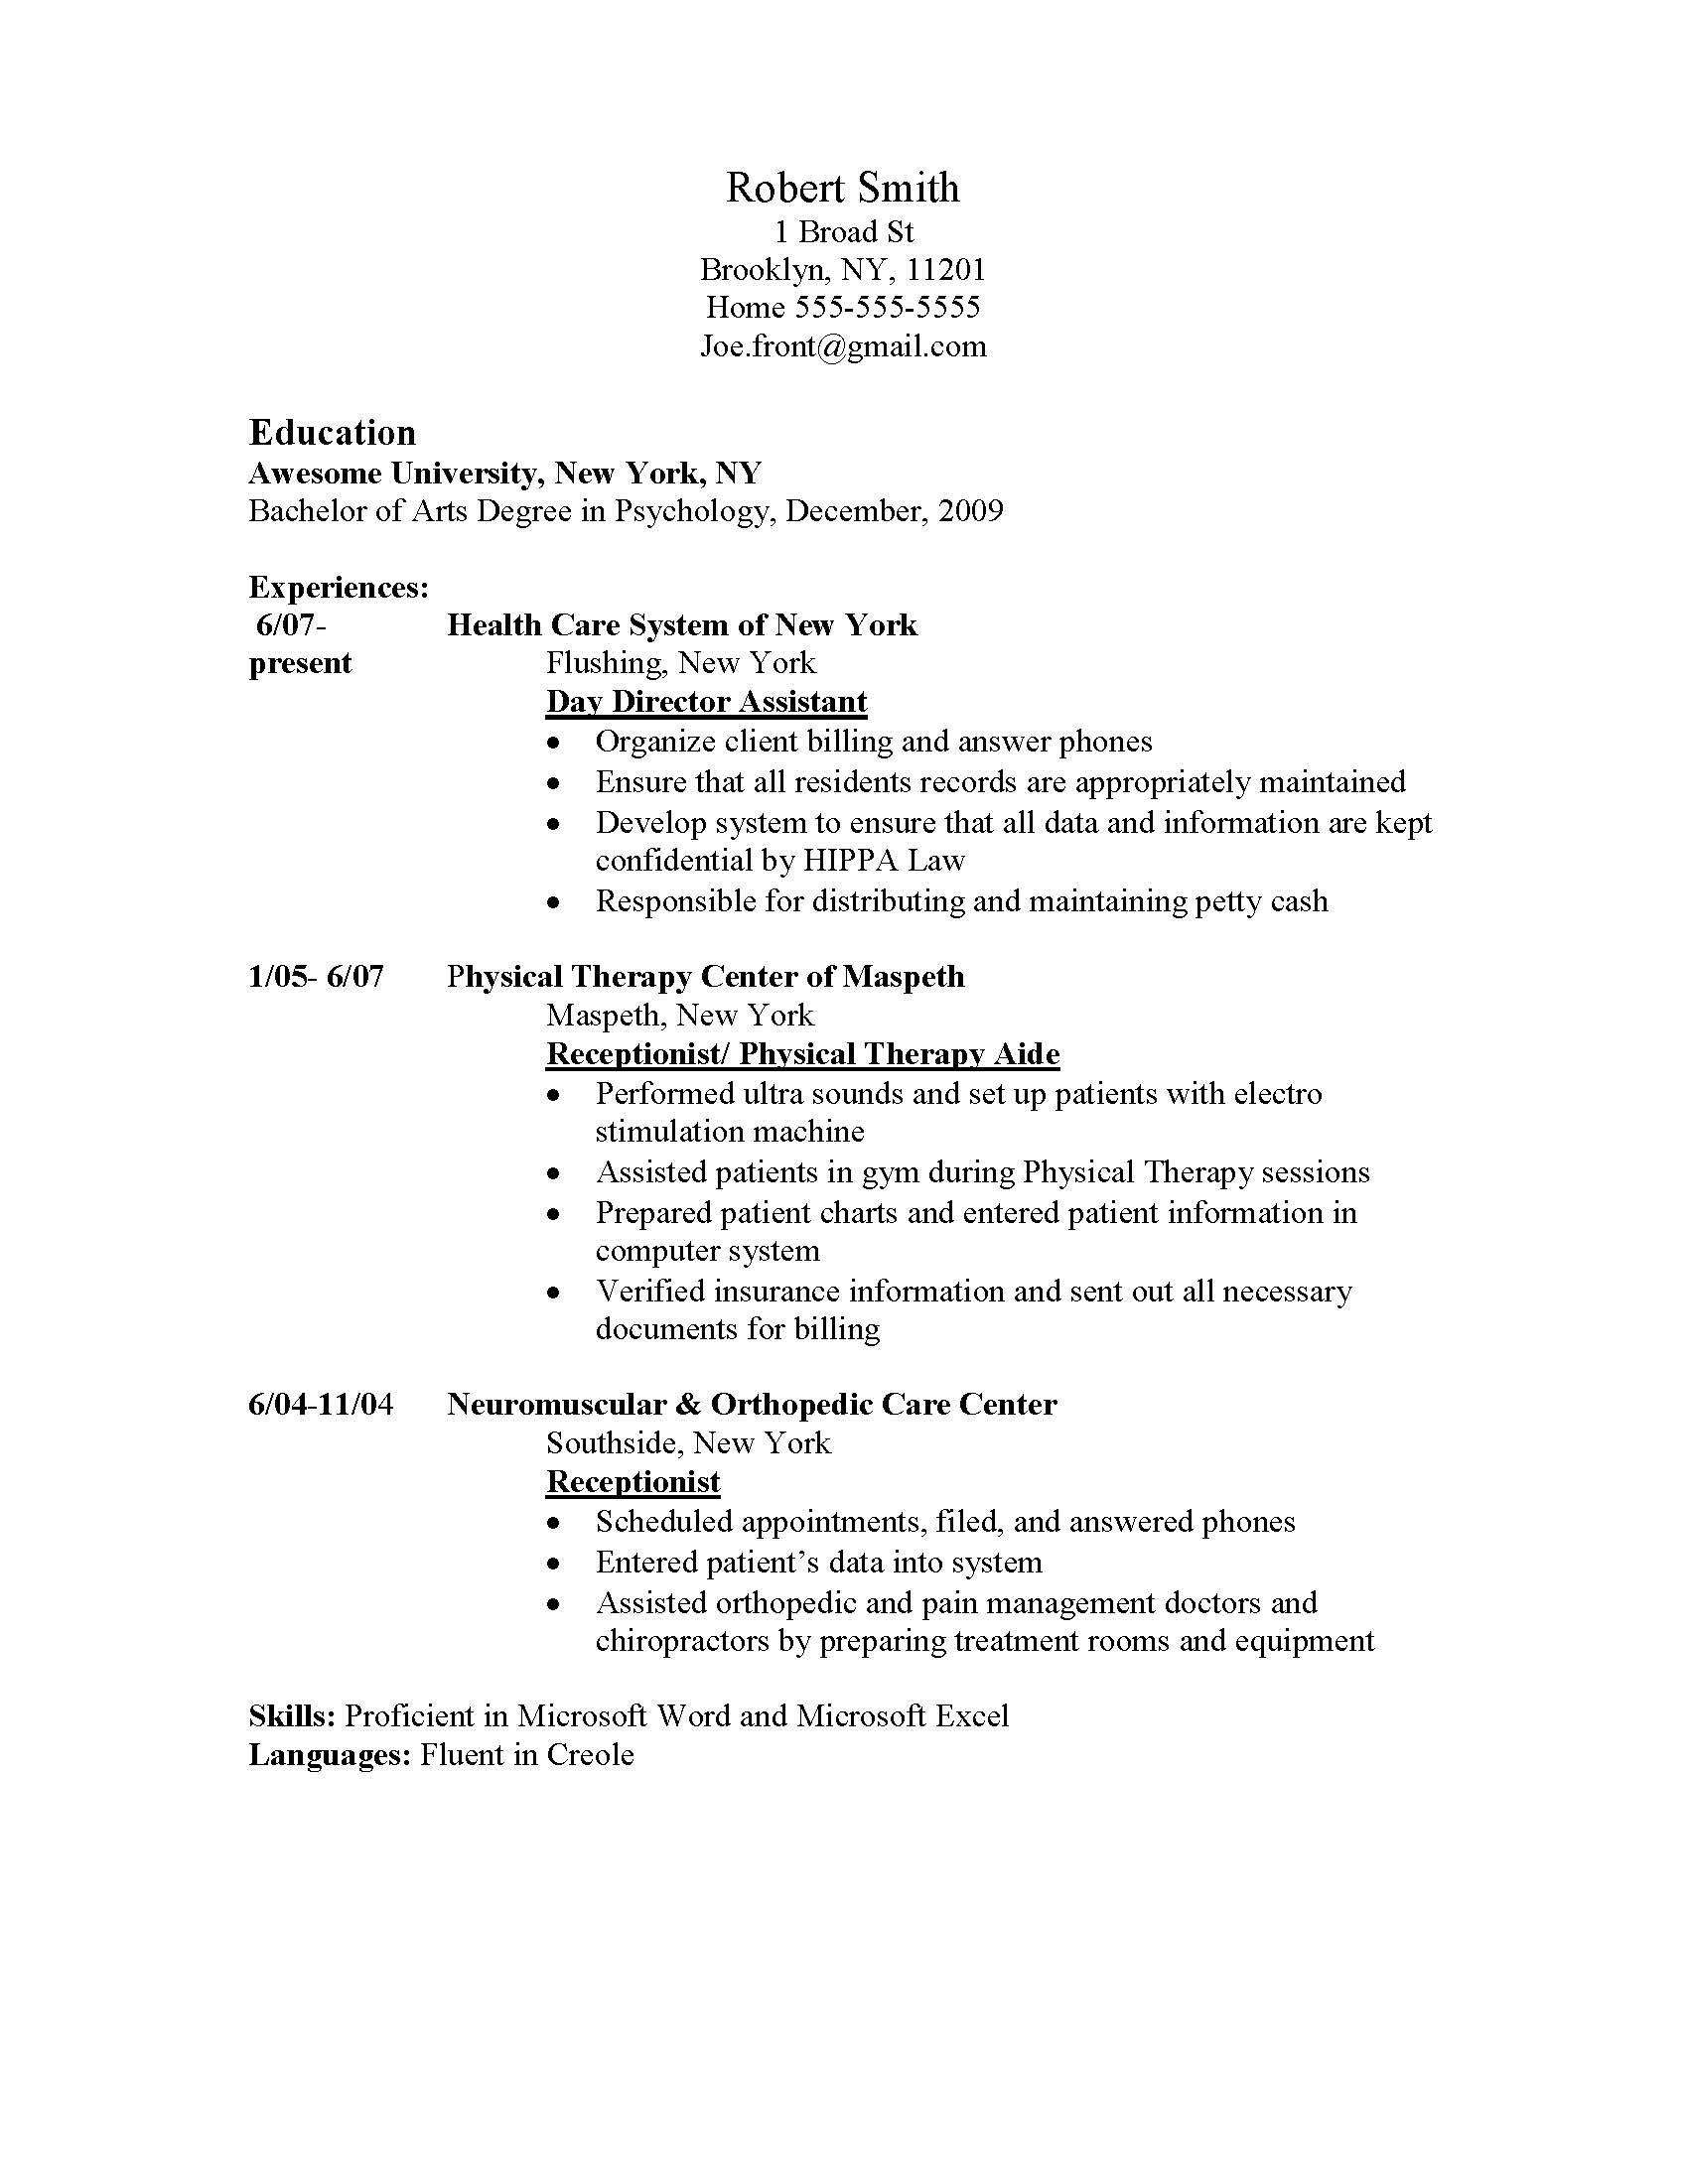 Resume Cover Letter Tips Service Delivery Manager Cover Lettera Customer Service Resume